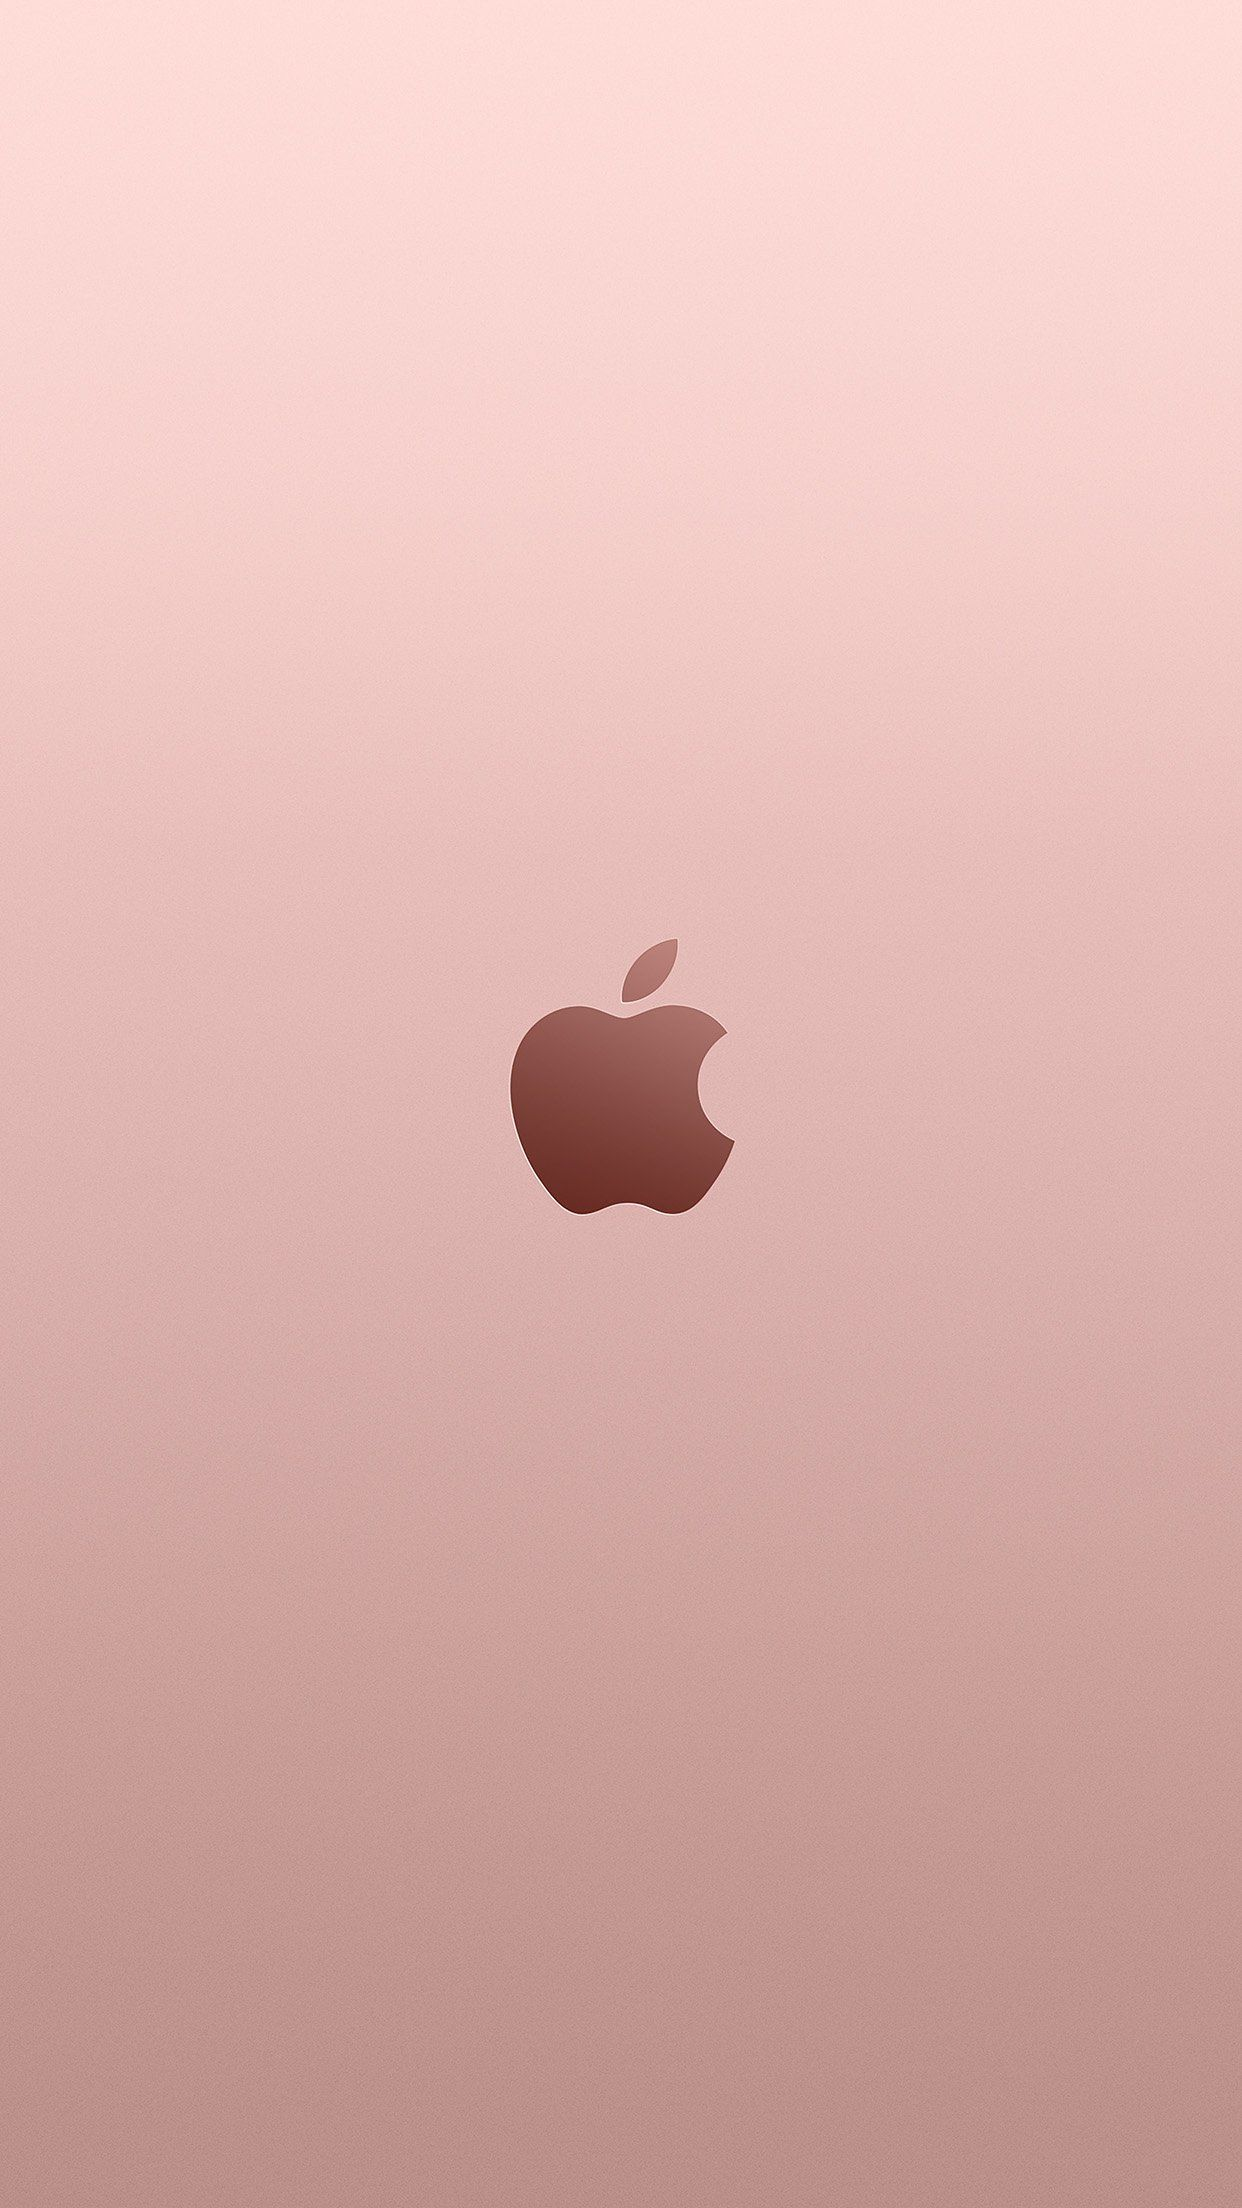 Ideas For Christmas Aesthetic Rose Gold Winter Wallpaper Iphone images in 2020 | Apple wallpaper ...